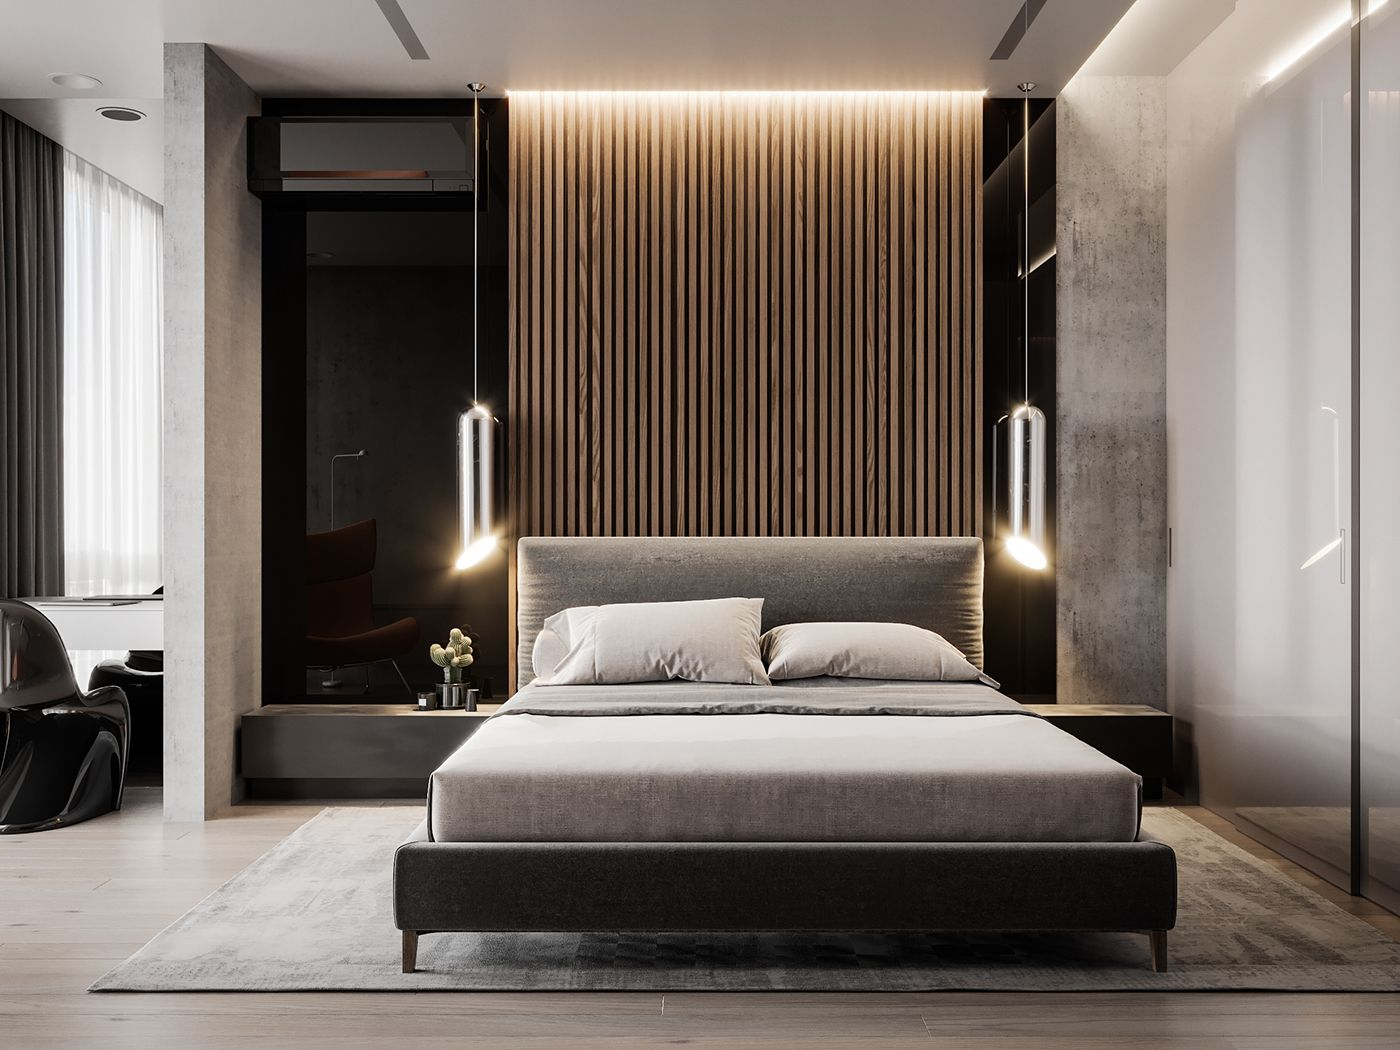 bedroom design  Bedroom minimalism in 2019  Modern